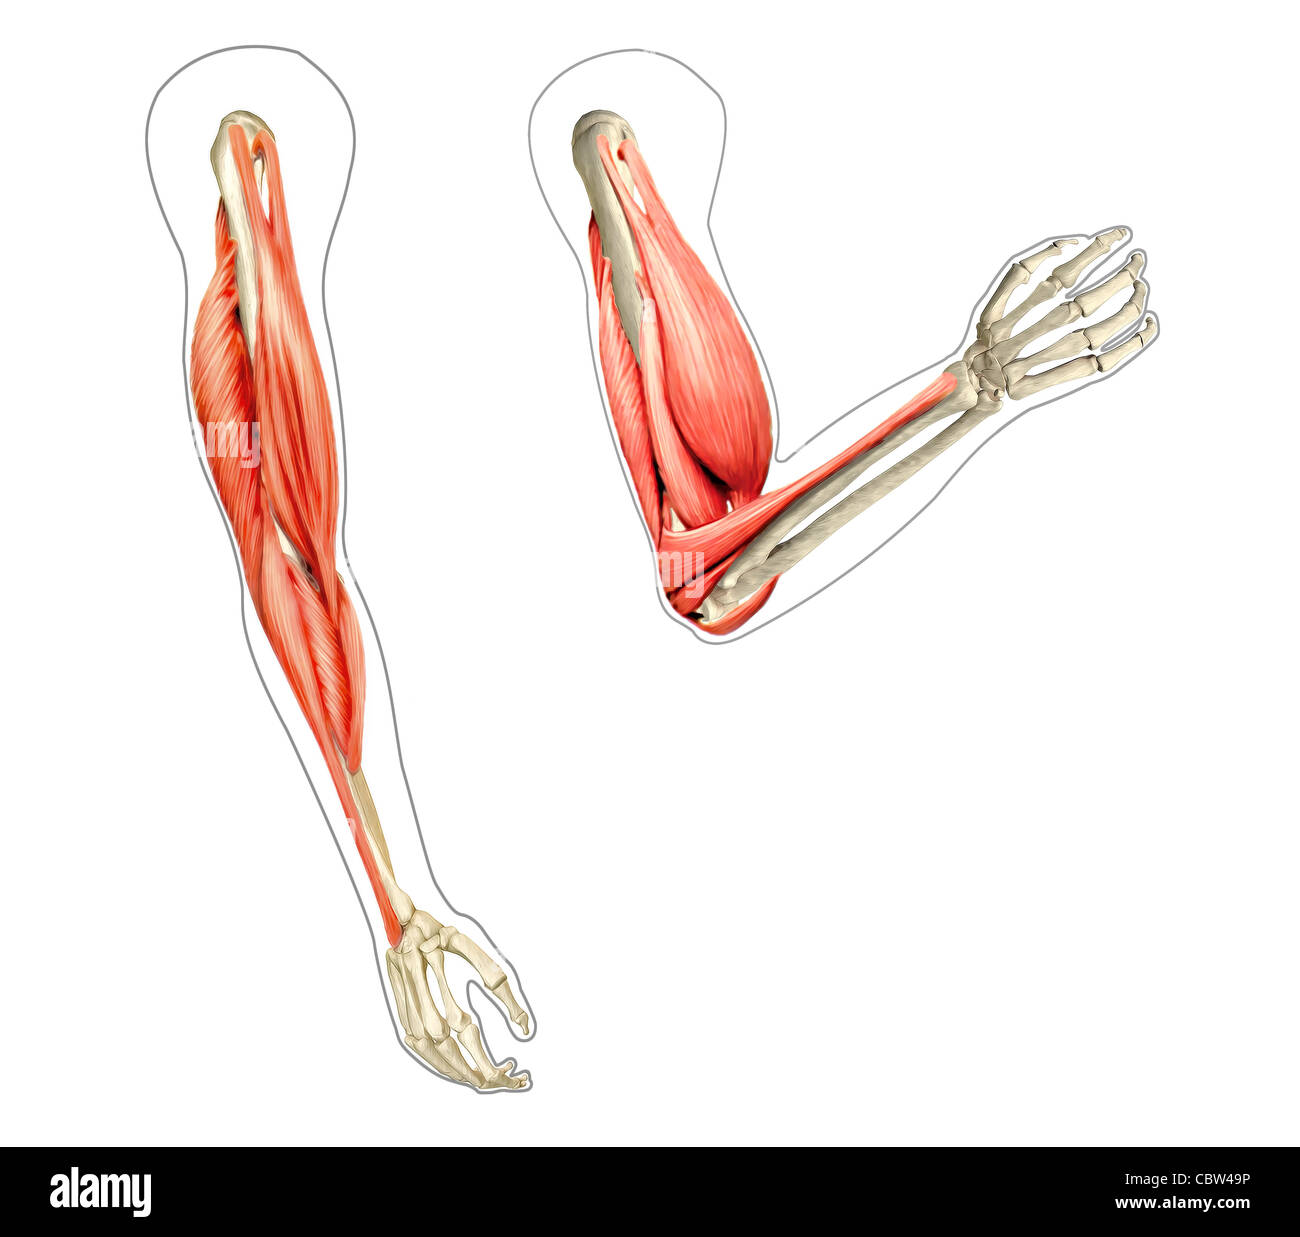 Human Shoulder Bones Illustration Stock Photos & Human Shoulder ...